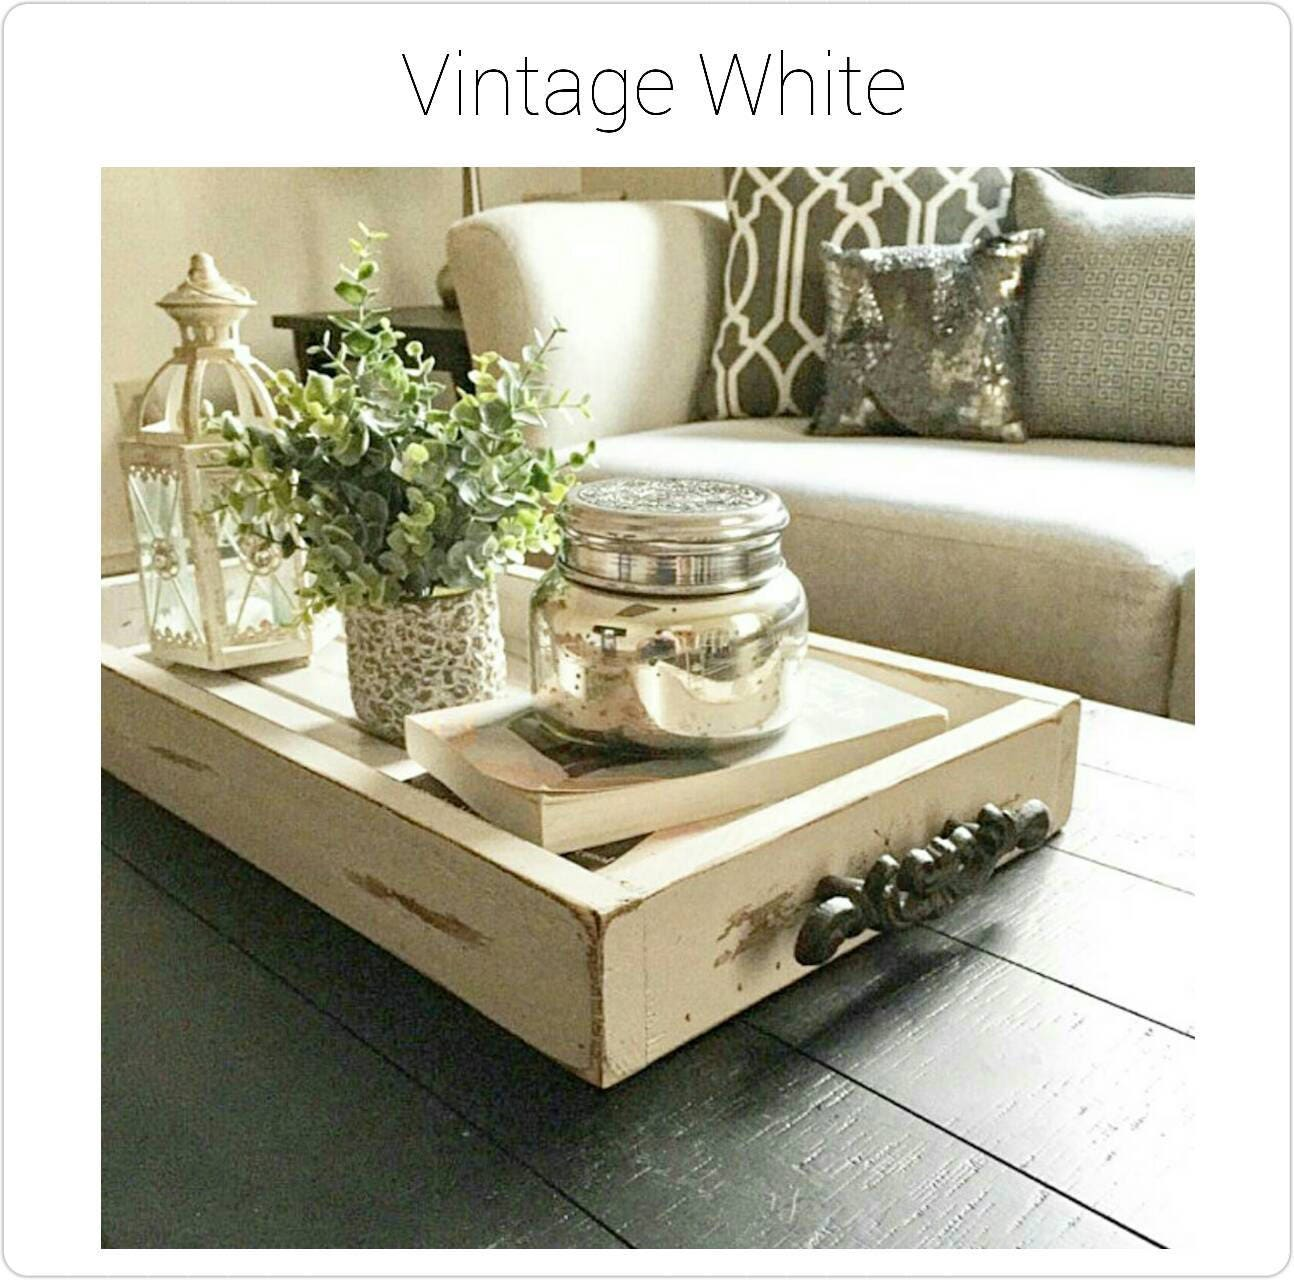 Awesome Magazine Tray   Coffee Table Tray   Rustic Wooden Ottoman Tray   Decorative  Tray   Coffee Table Tray   Farmhouse Decor   Wooden Tray